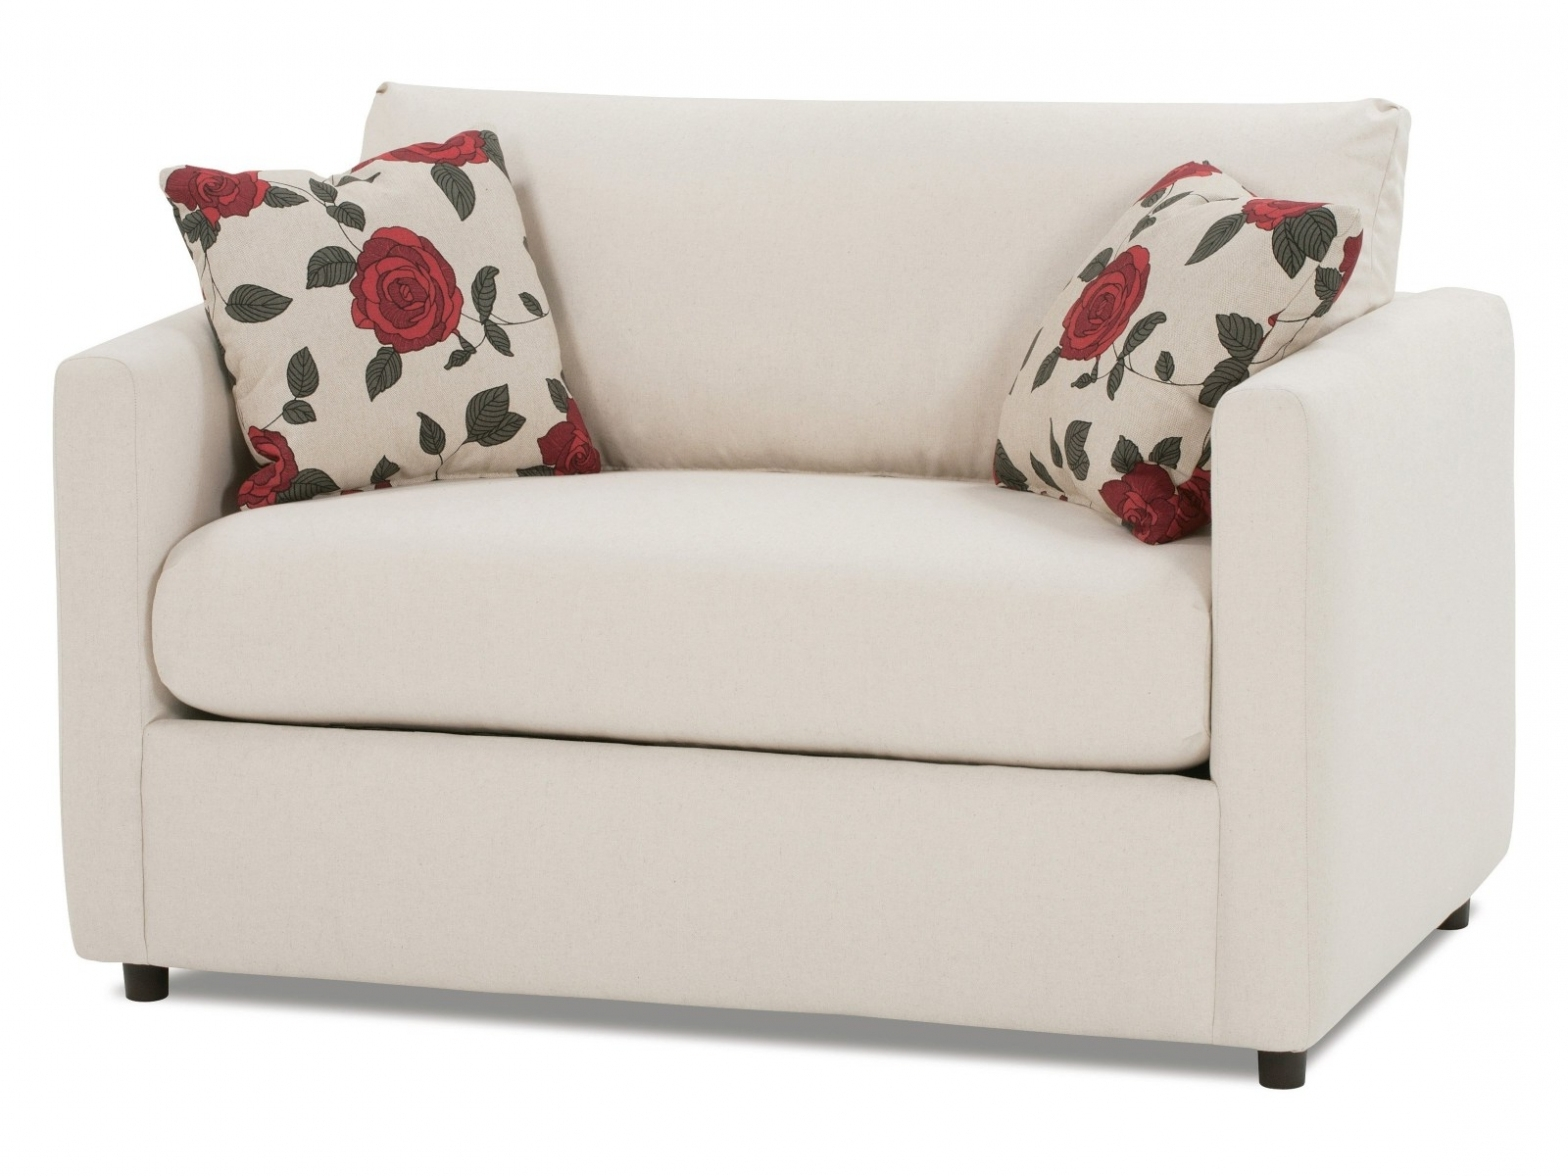 Preferred Twin Sleeper Sofa Chairs Intended For Furniture: ▻ Sofa : 11 Nice Twin Sleeper Sofa Ikea Cool Small (View 13 of 20)